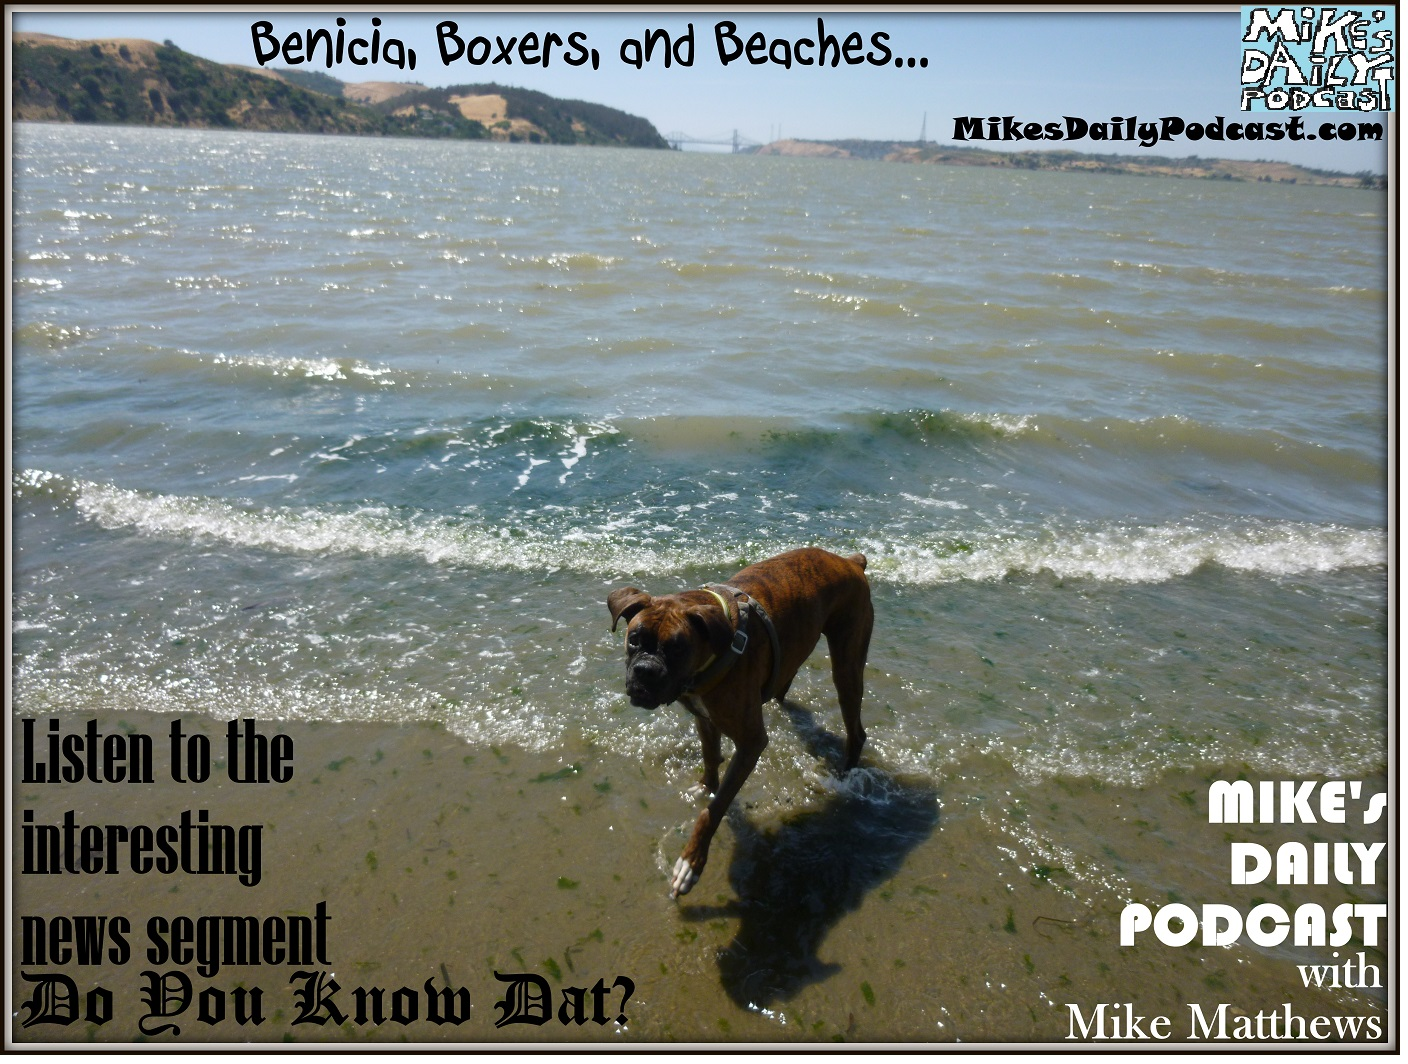 MIKEs DAILY PODCAST 1005 Benicia beach boxers